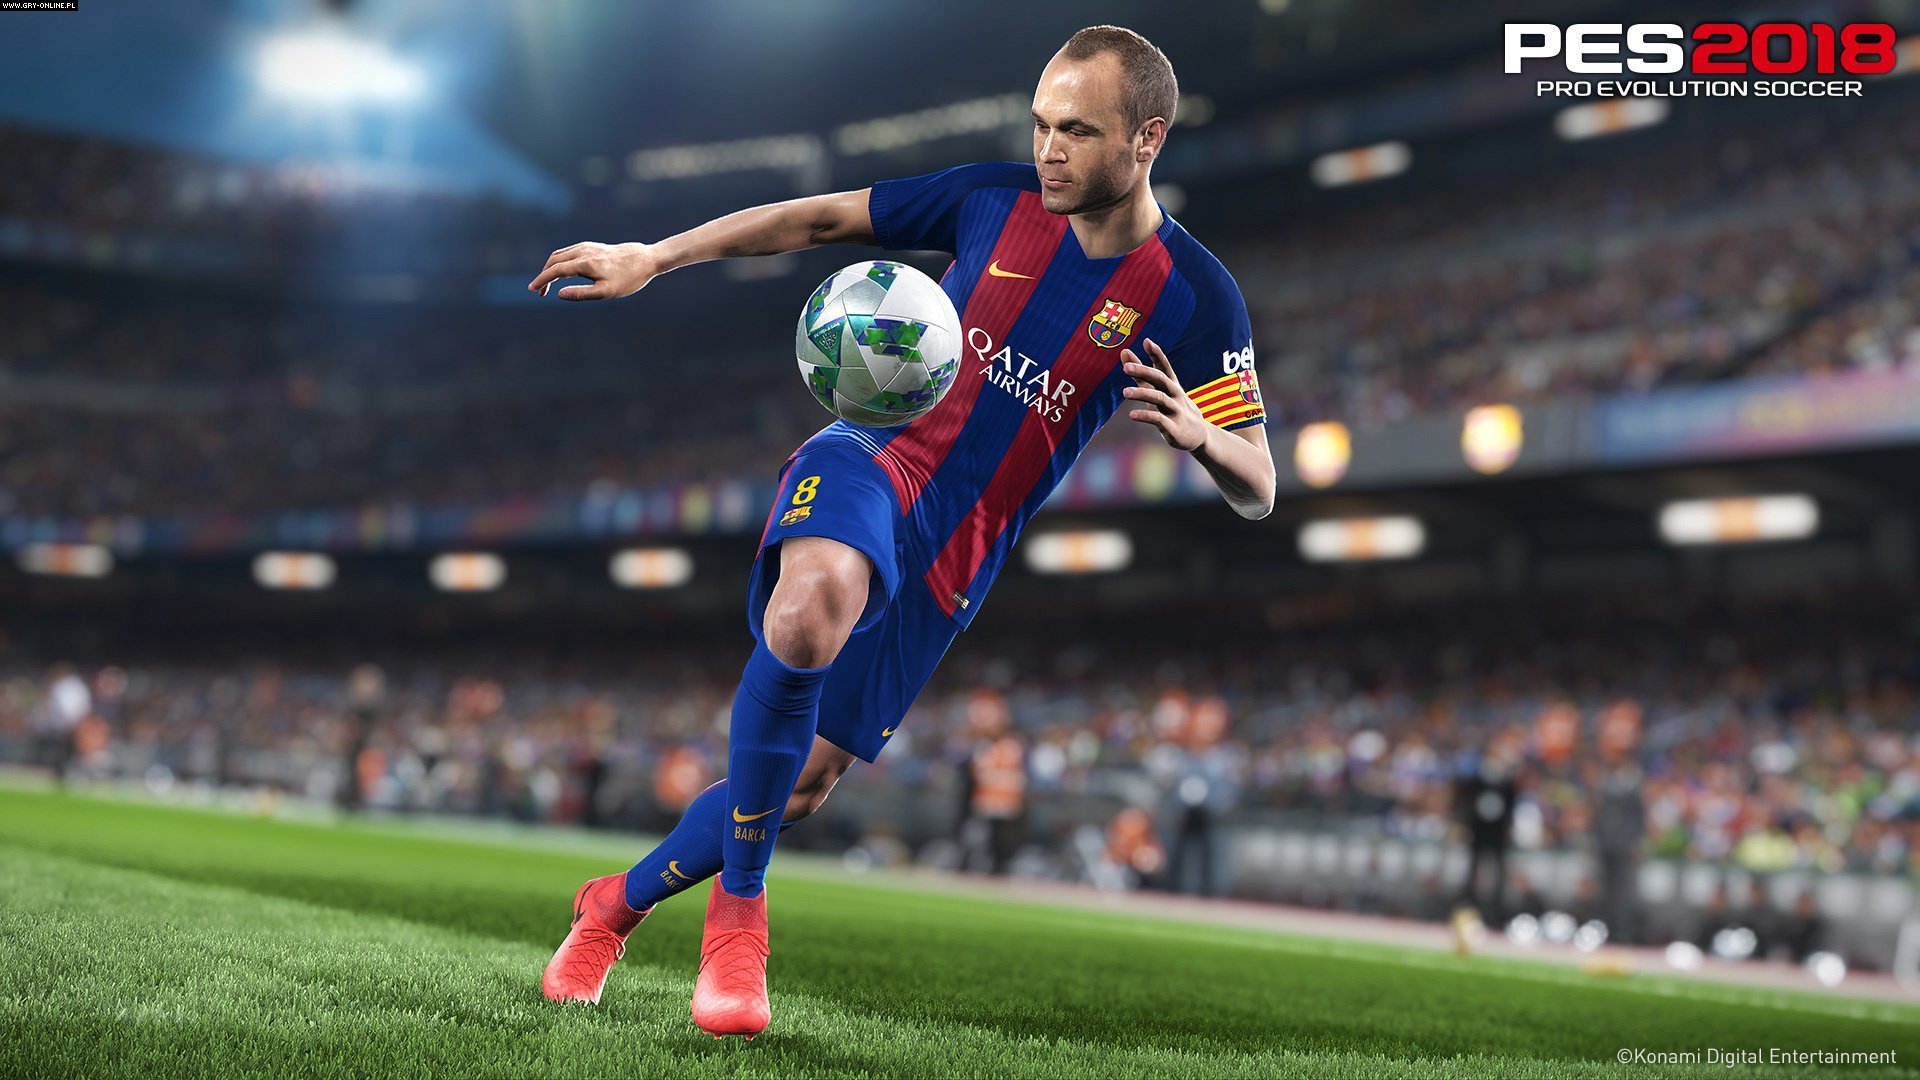 Pro Evolution Soccer 2018 PS4, XONE, PC Games Image 25/25, Konami